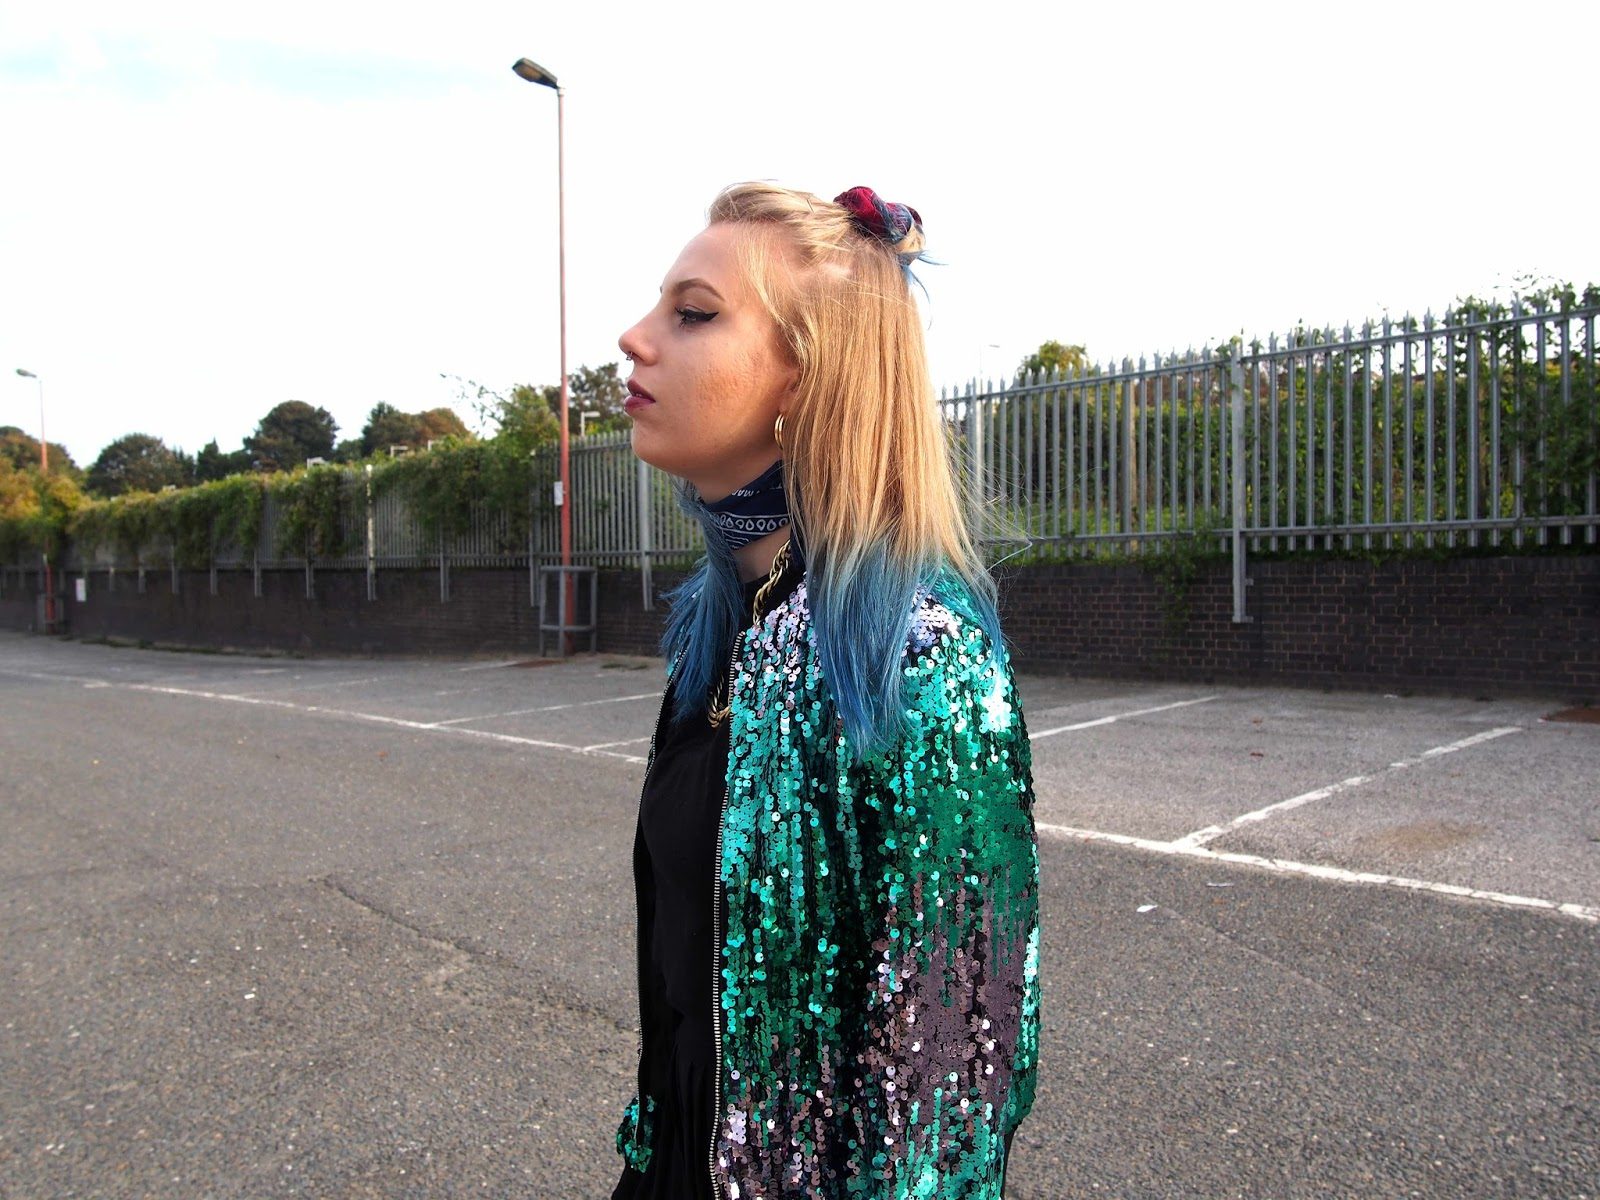 mermaid outfit, mermaid sequins, sequin bomber jacket, pleated culottes, gold rope chain, bandana neck scarf, skinnydip holographic shell bag, autumn winter ootn night out outfit